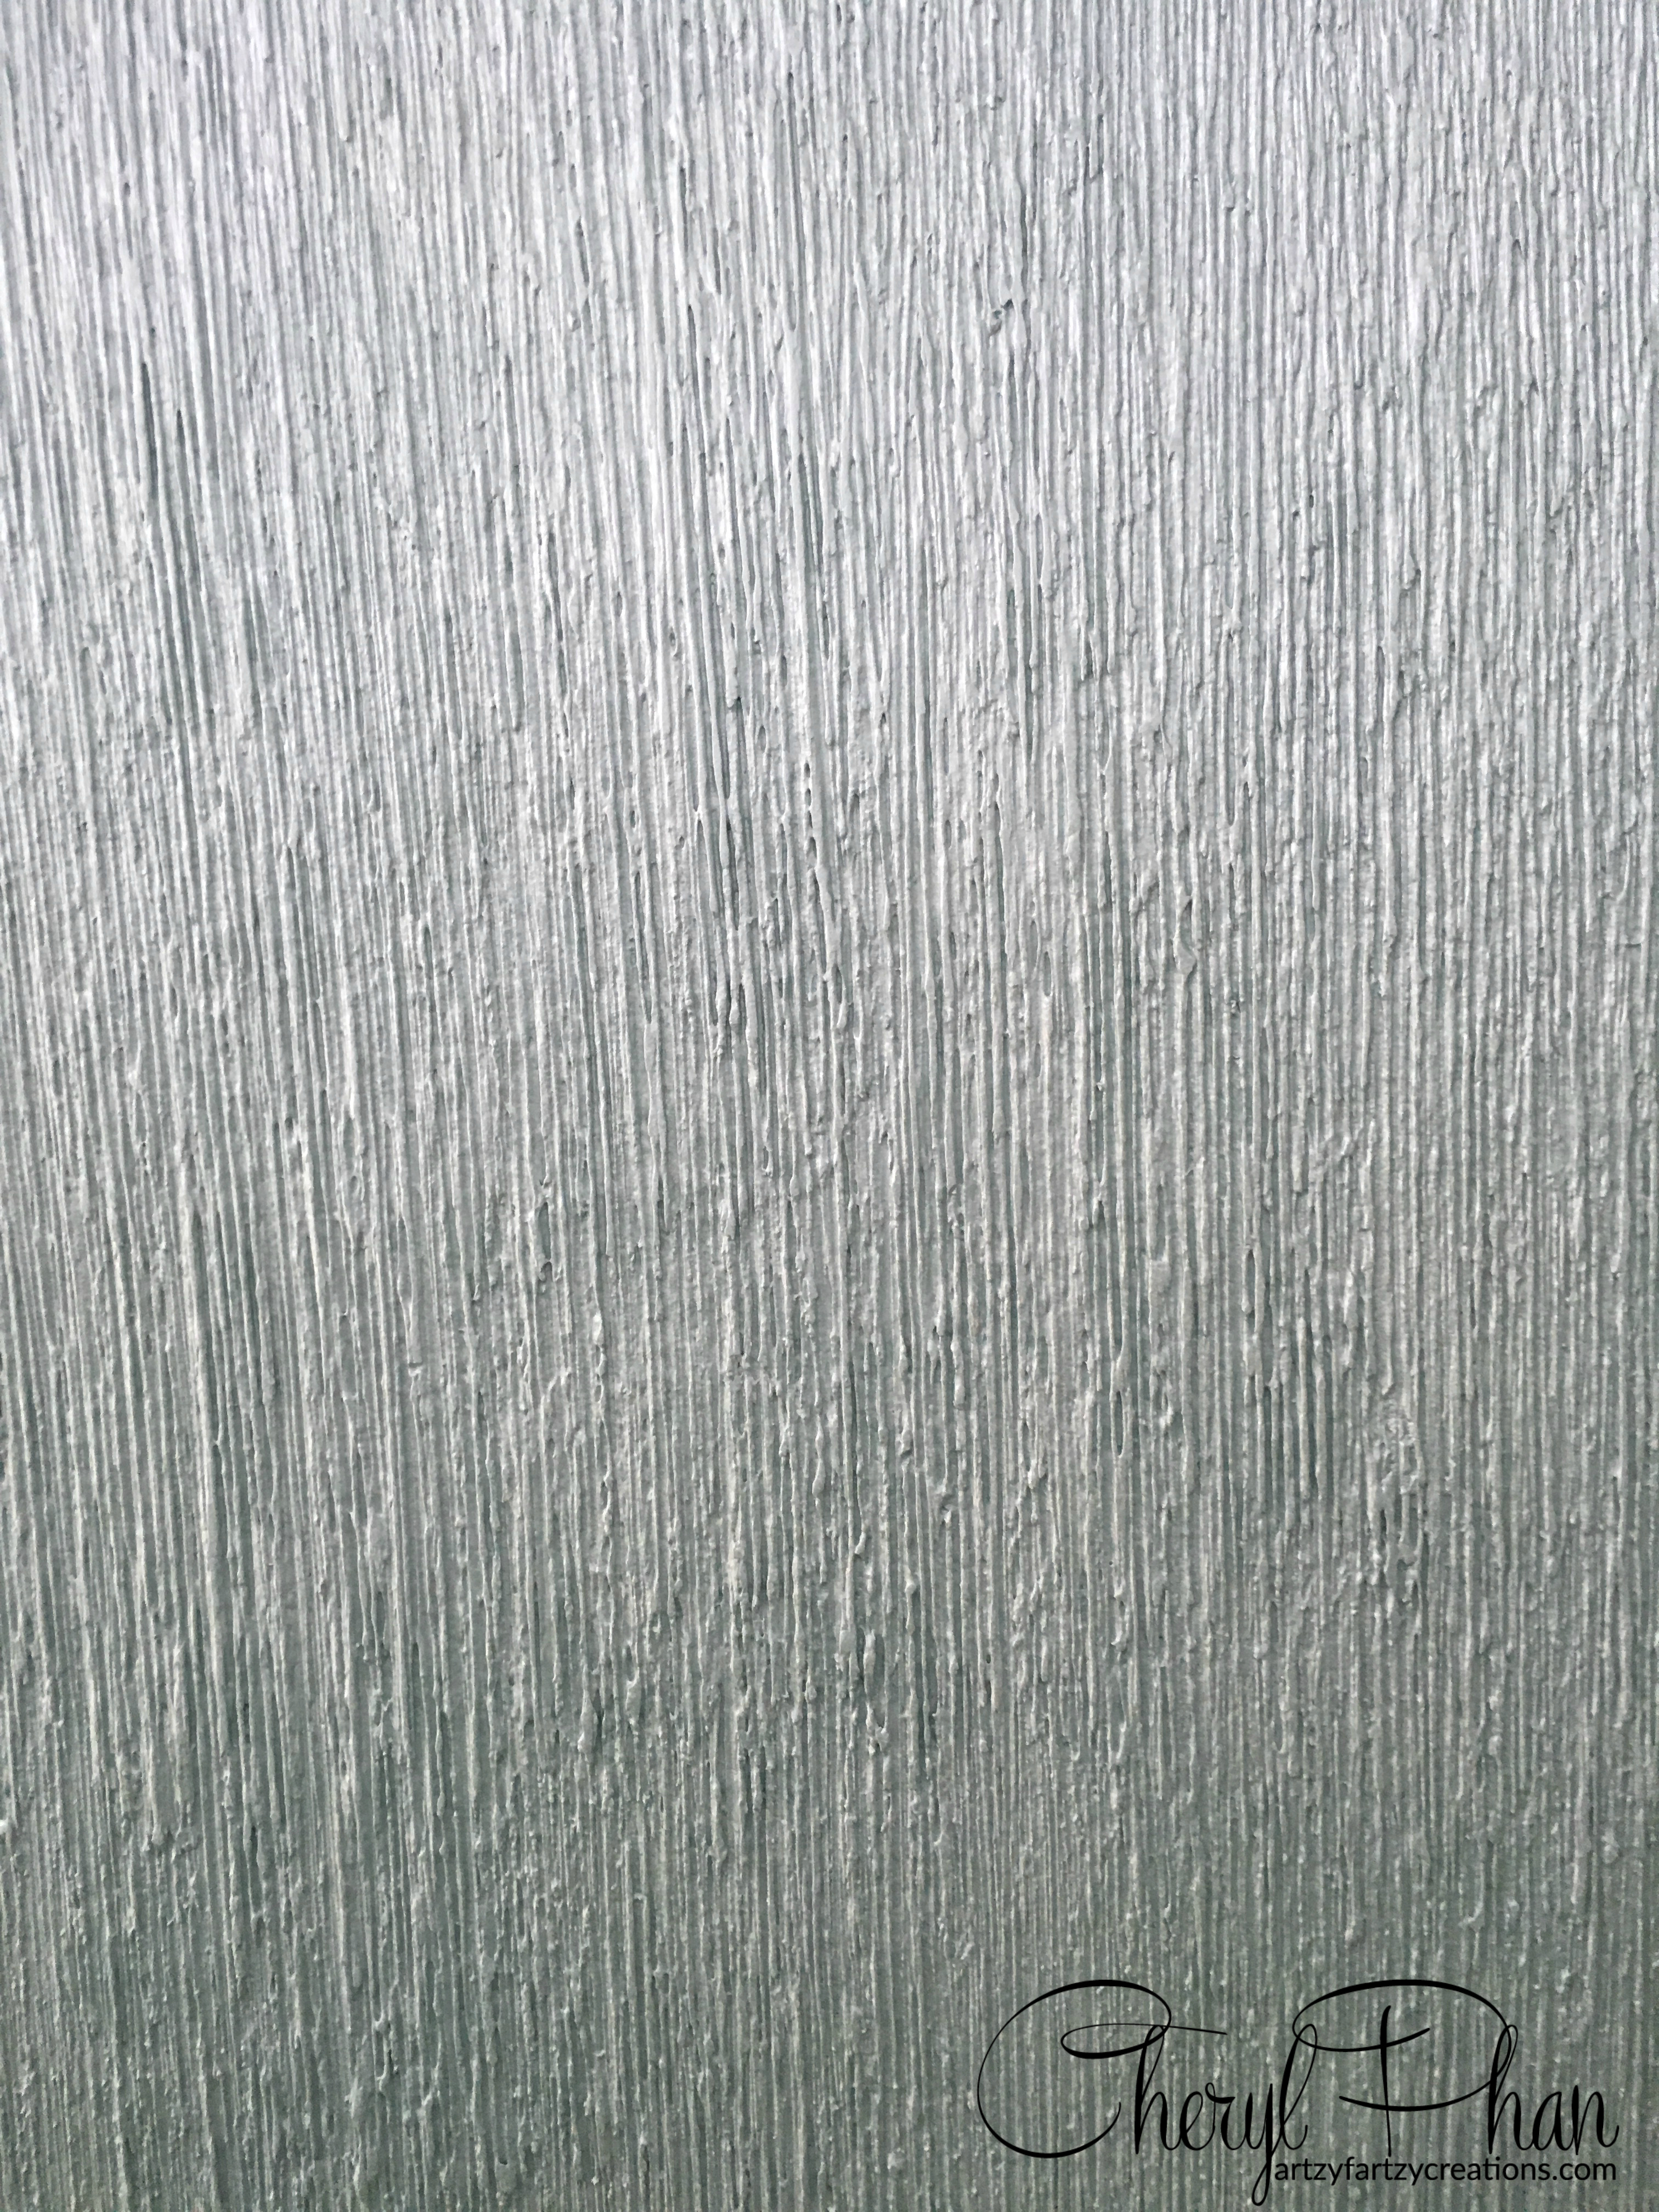 Faux Wall Finishes How To Paint A Textured Metallic Wall Finish By Cheryl Phan